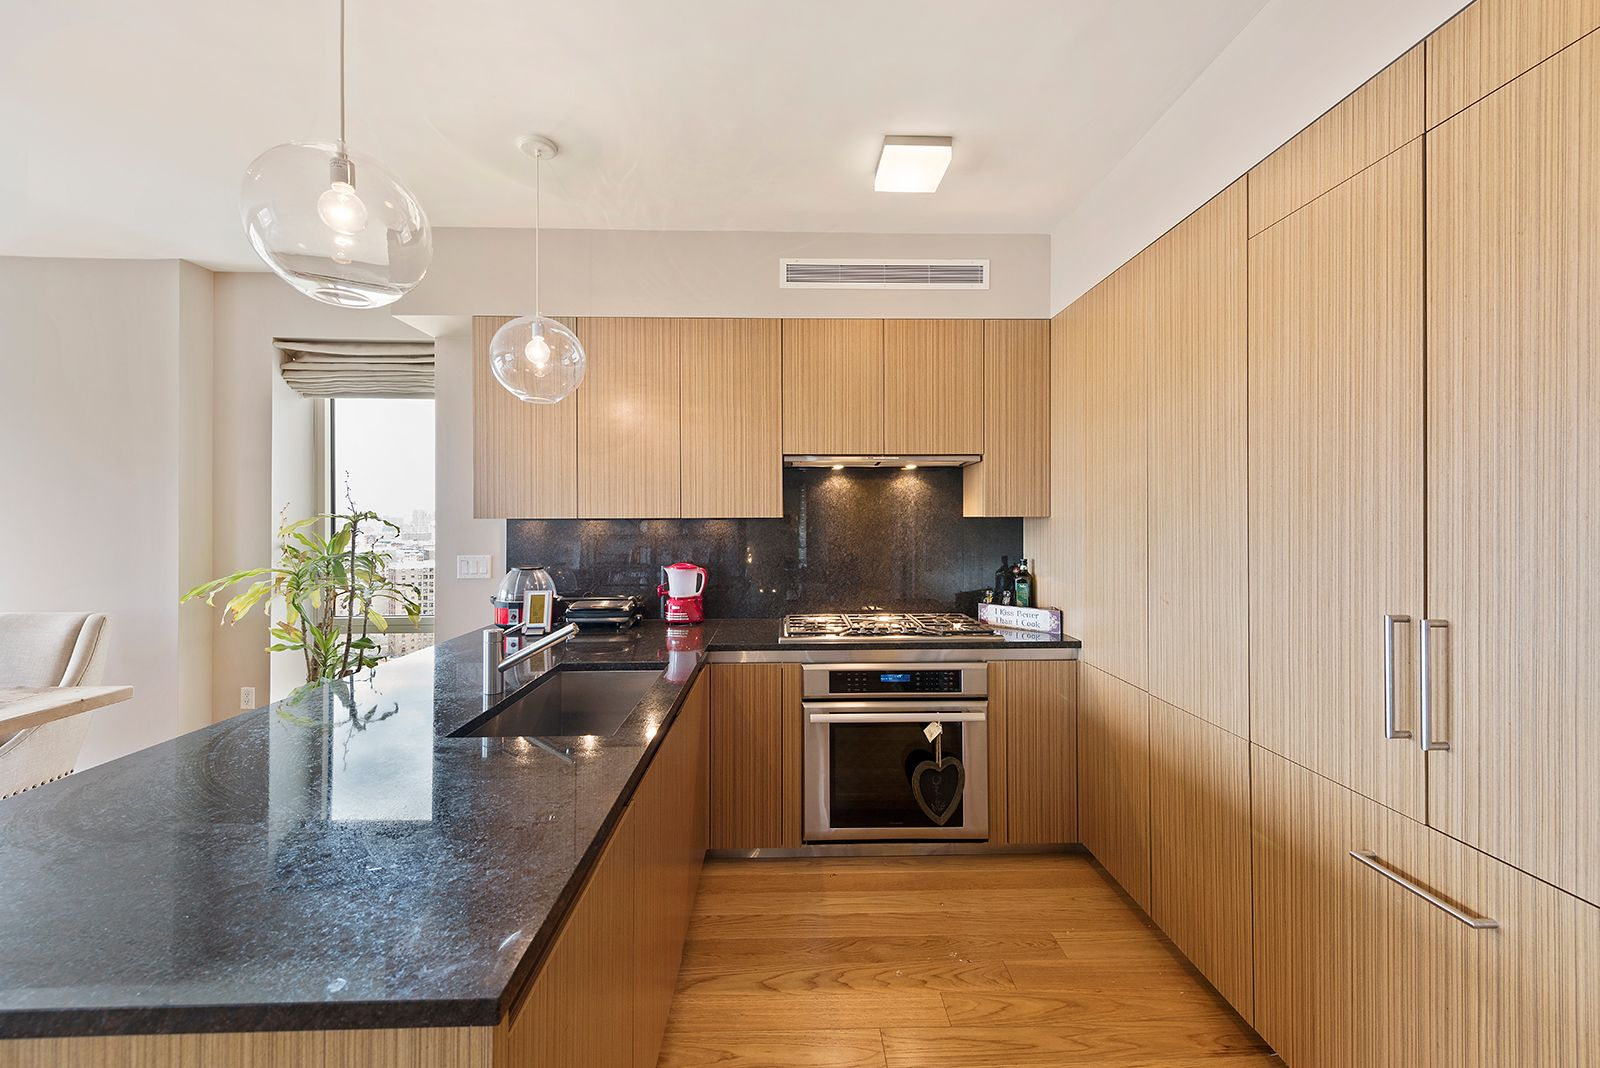 No window kitchen sink  donatella arpaia cooks up condo at one museum mile  condos and kitchens